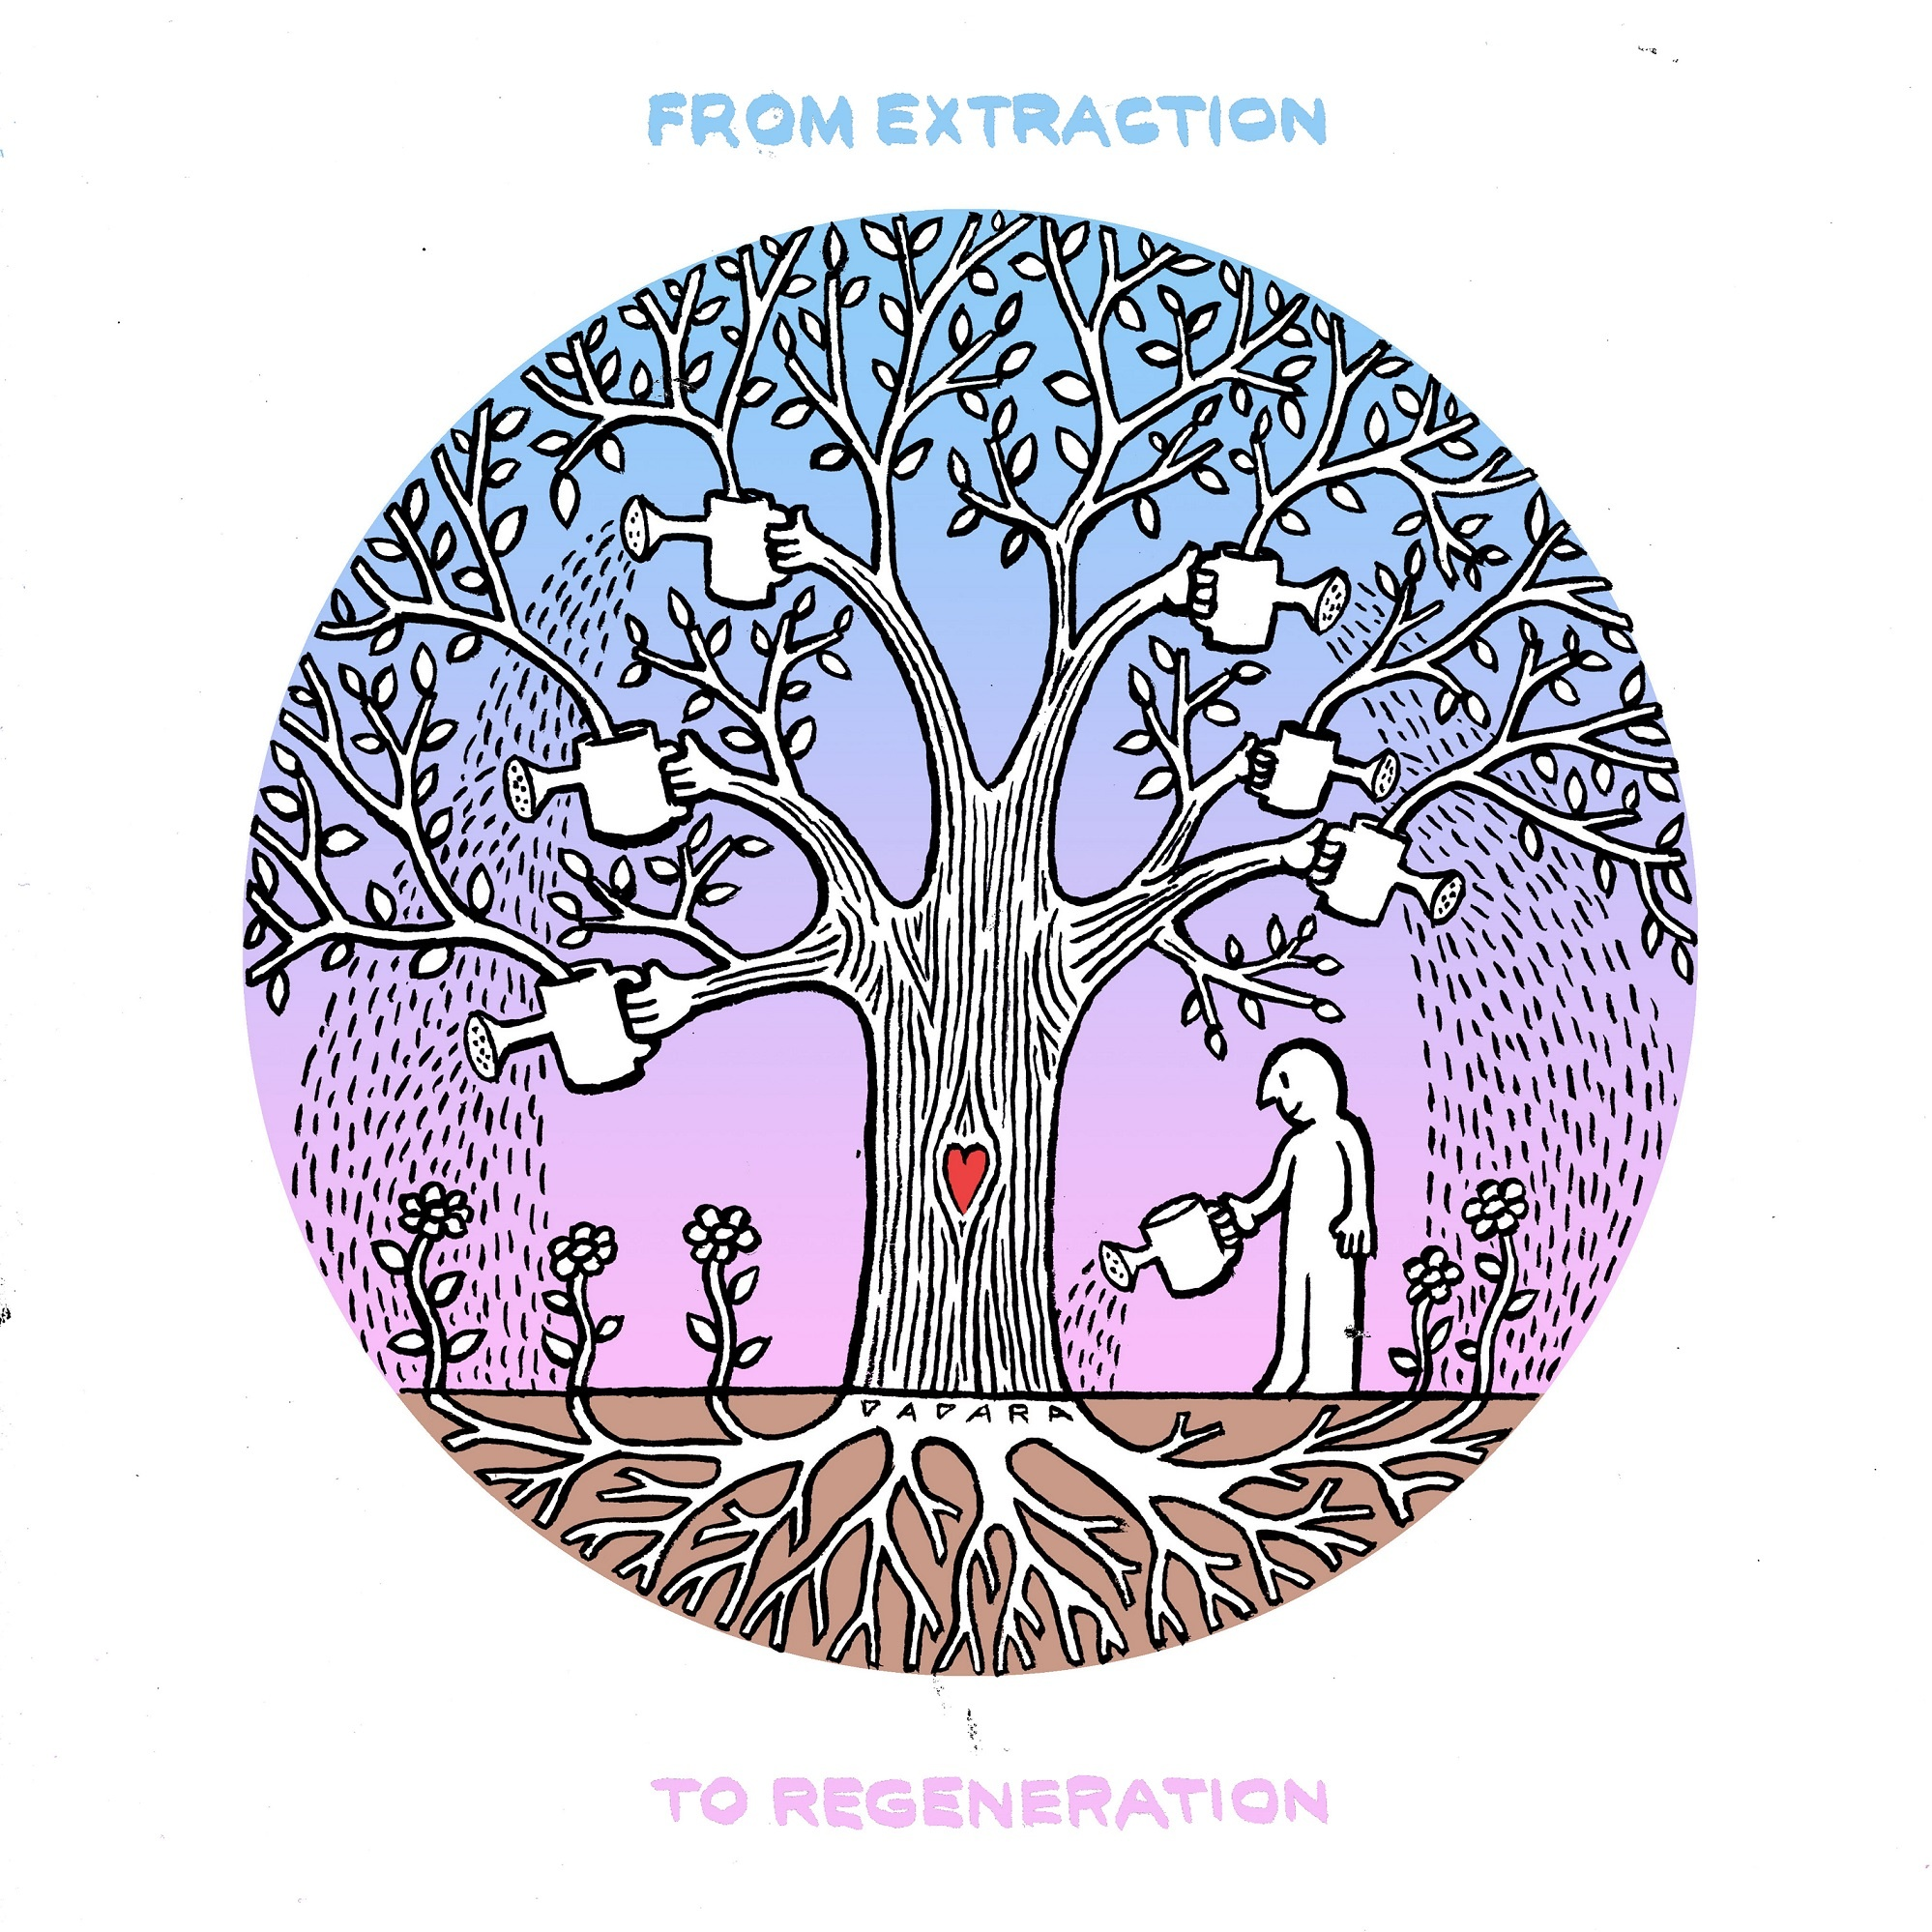 An illustration of a tree with hands instead of branches. Each hand holds watering can. The tree waters the flowers around. A man stands by and waters the tree. Text: Extraction to regeneration.